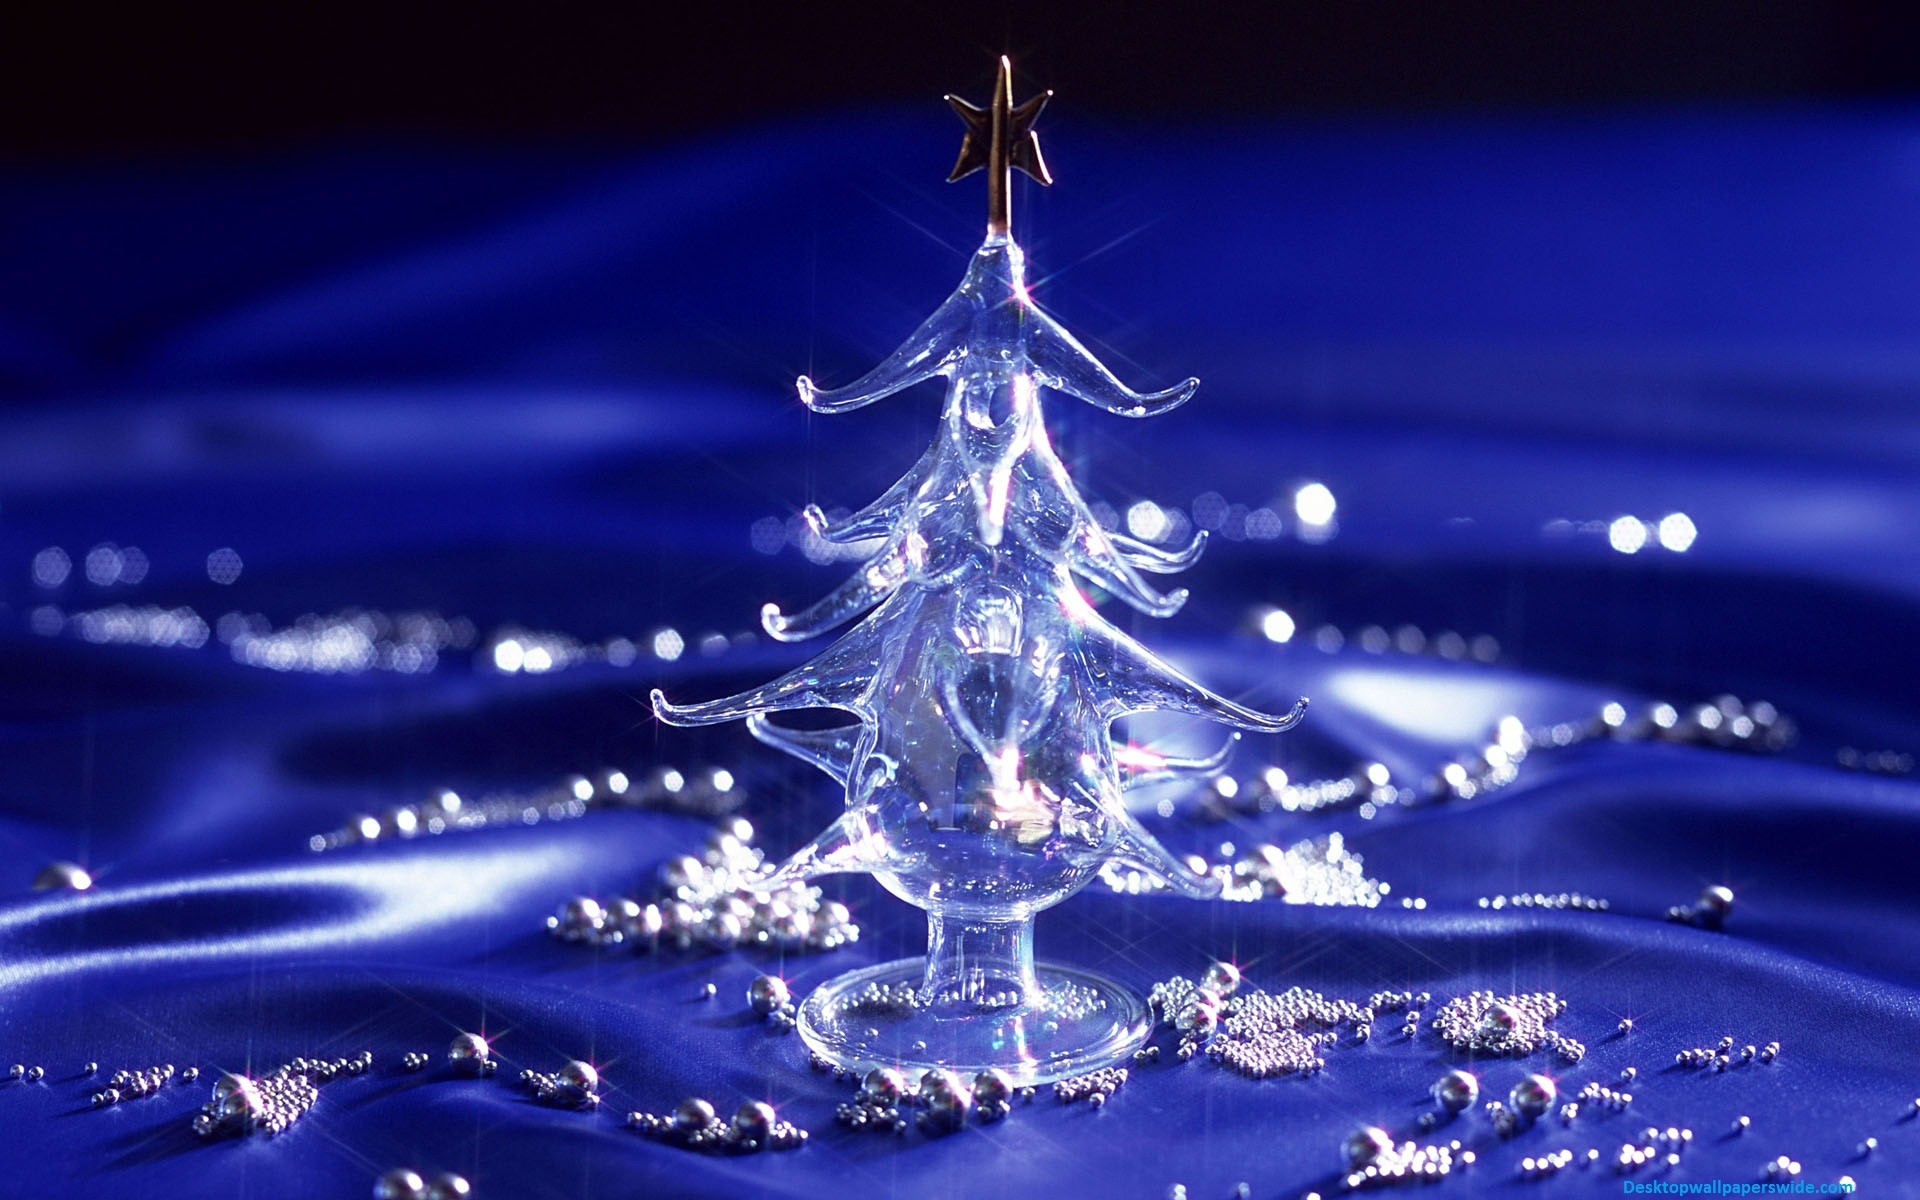 Free Christmas Wallpaper Downloads.Live Christmas Wallpaper For Ipad 59 Images